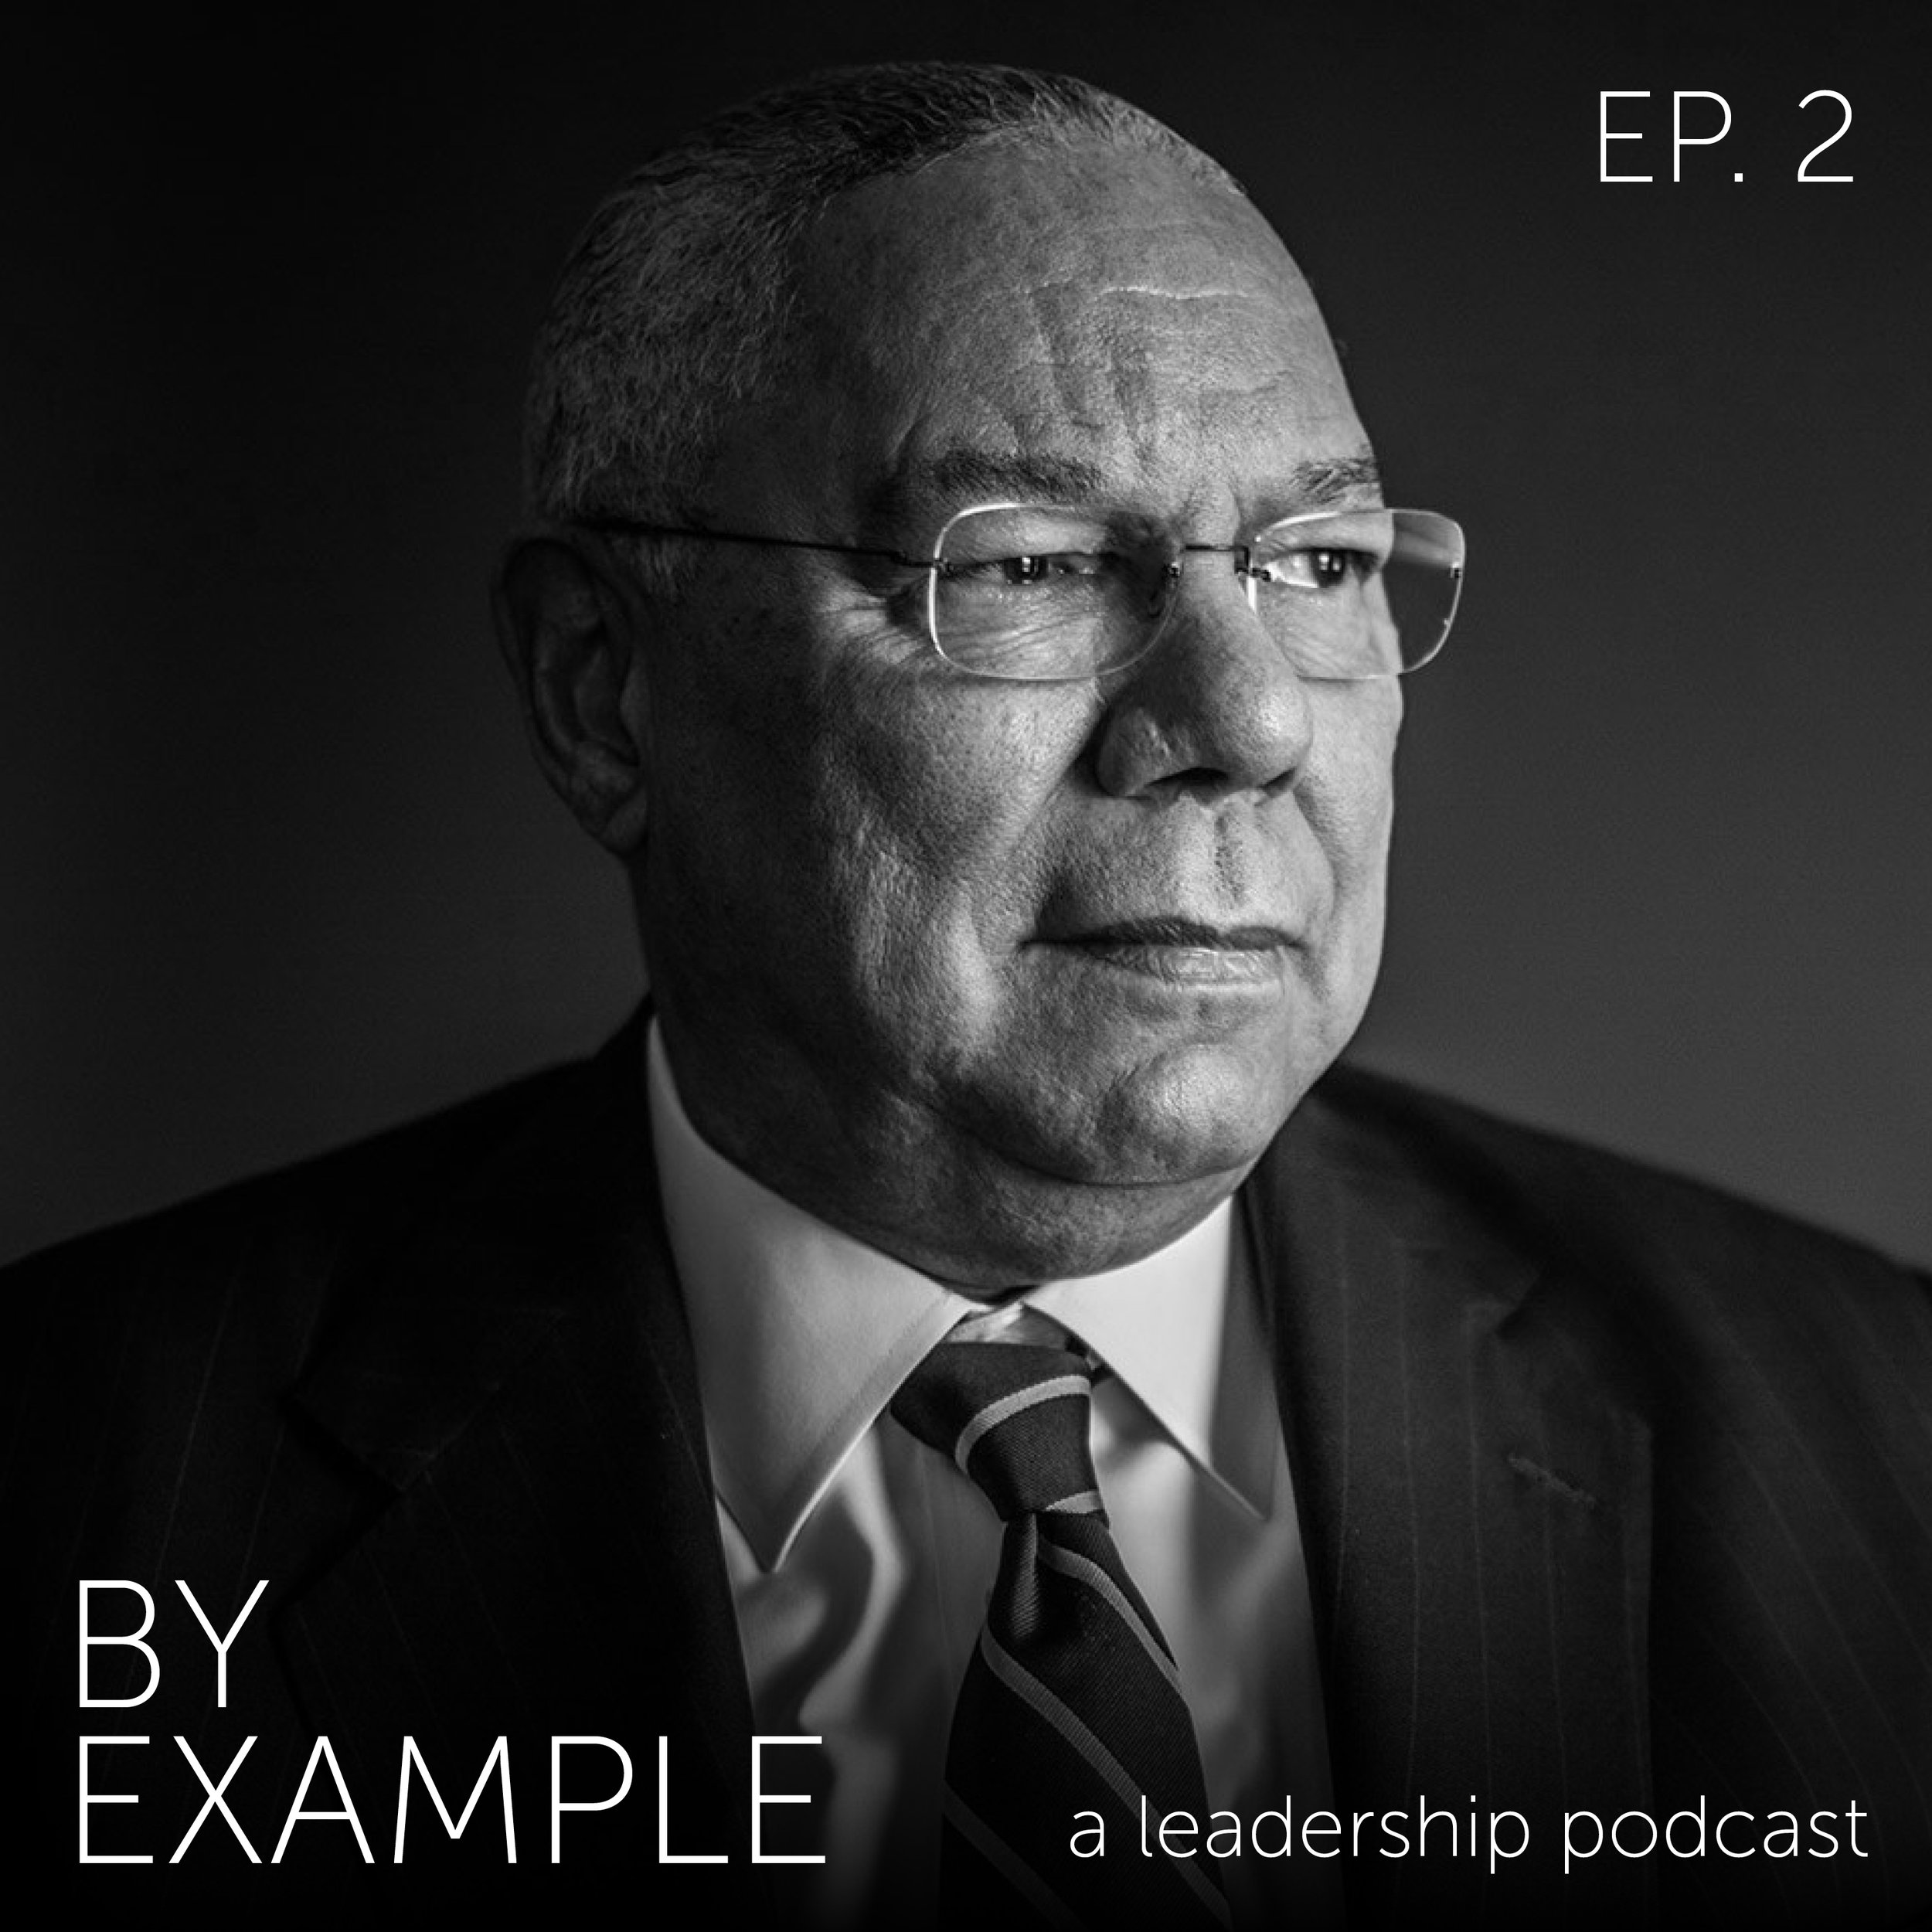 By Example Episode Art3.jpg